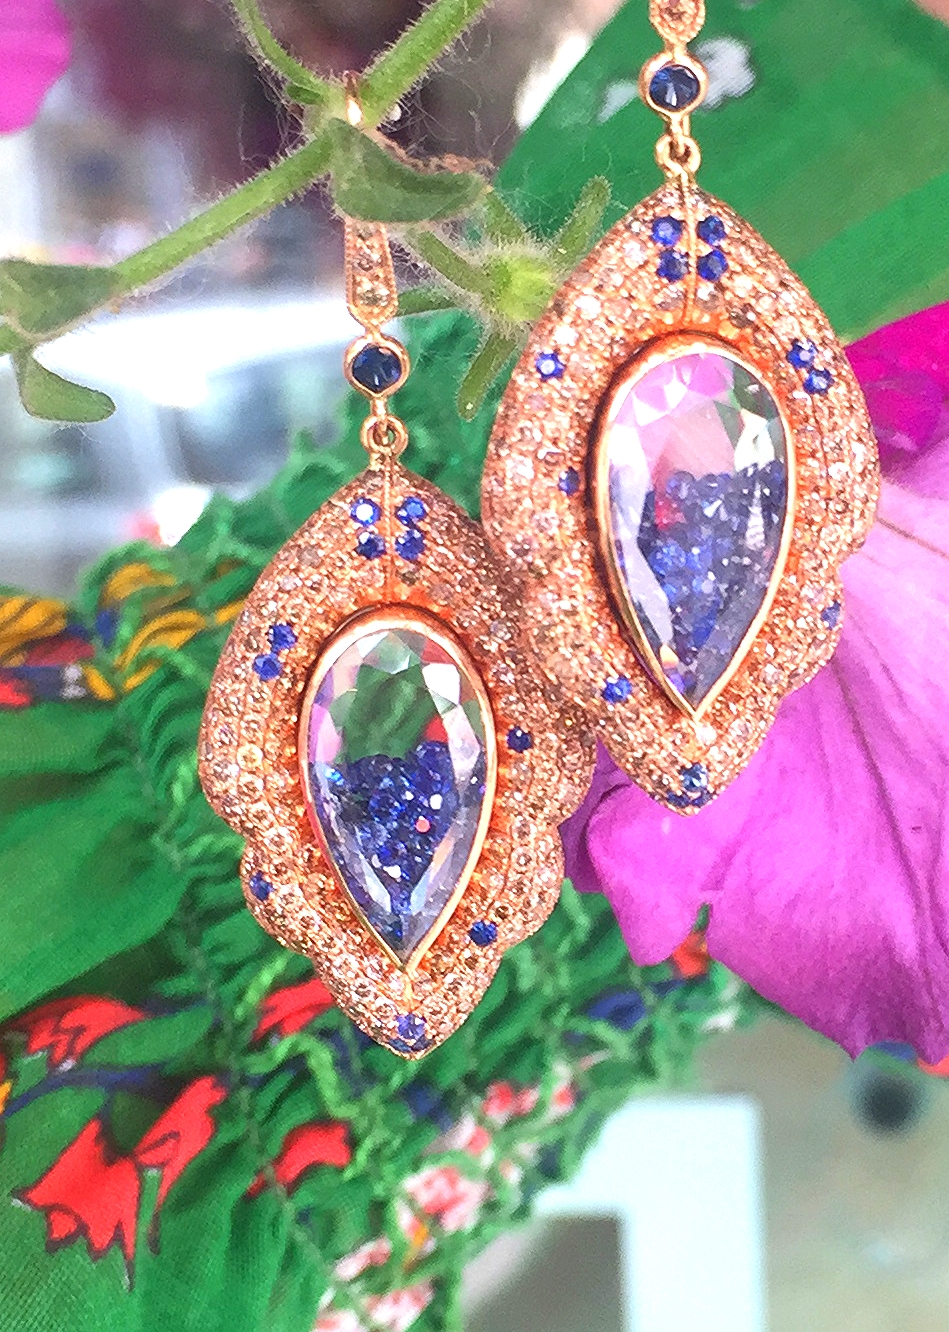 Moritz Glik Rose gold, sapphire, and diamond shaker earrings.